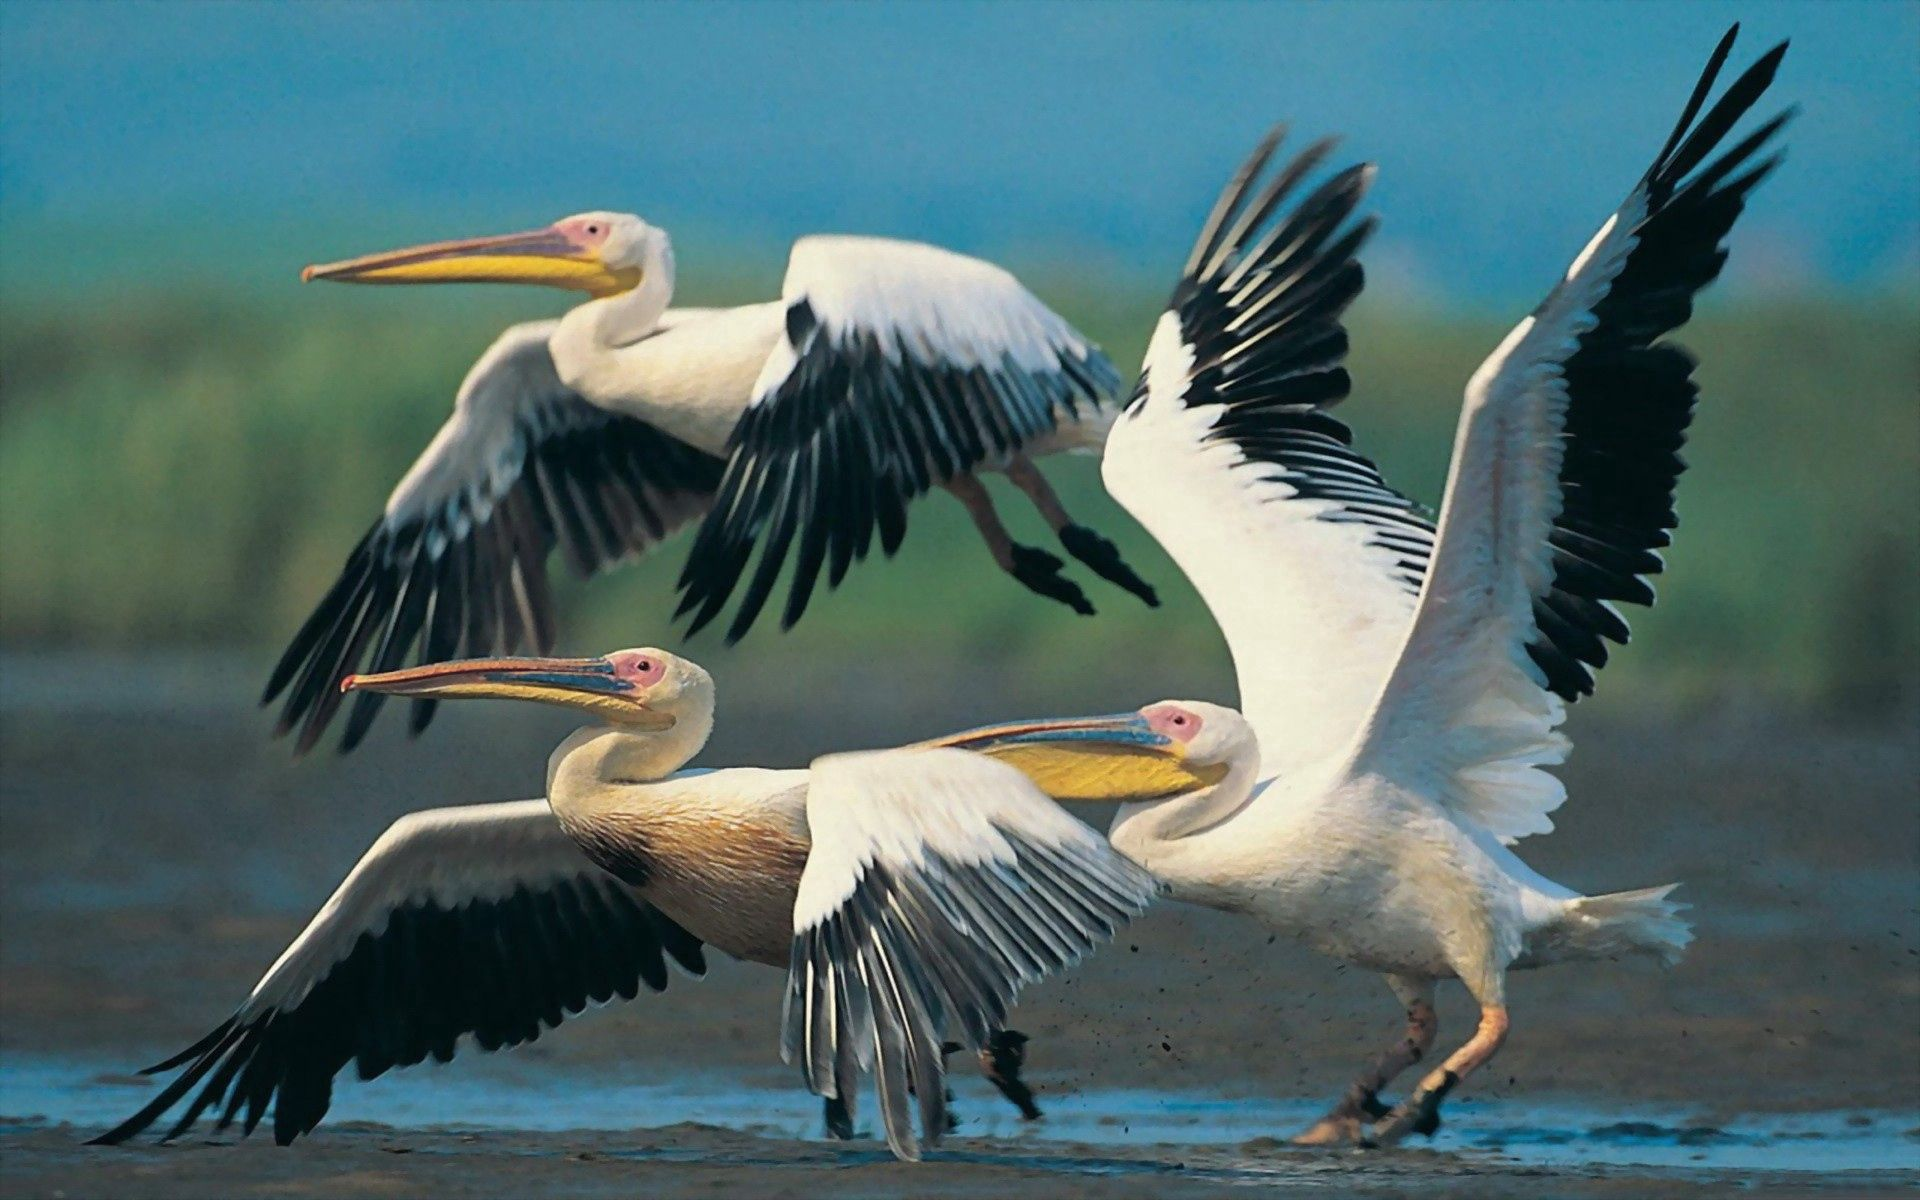 126345 download wallpaper Animals, Flight, Wings, Sweep, Wave, Pelicans screensavers and pictures for free